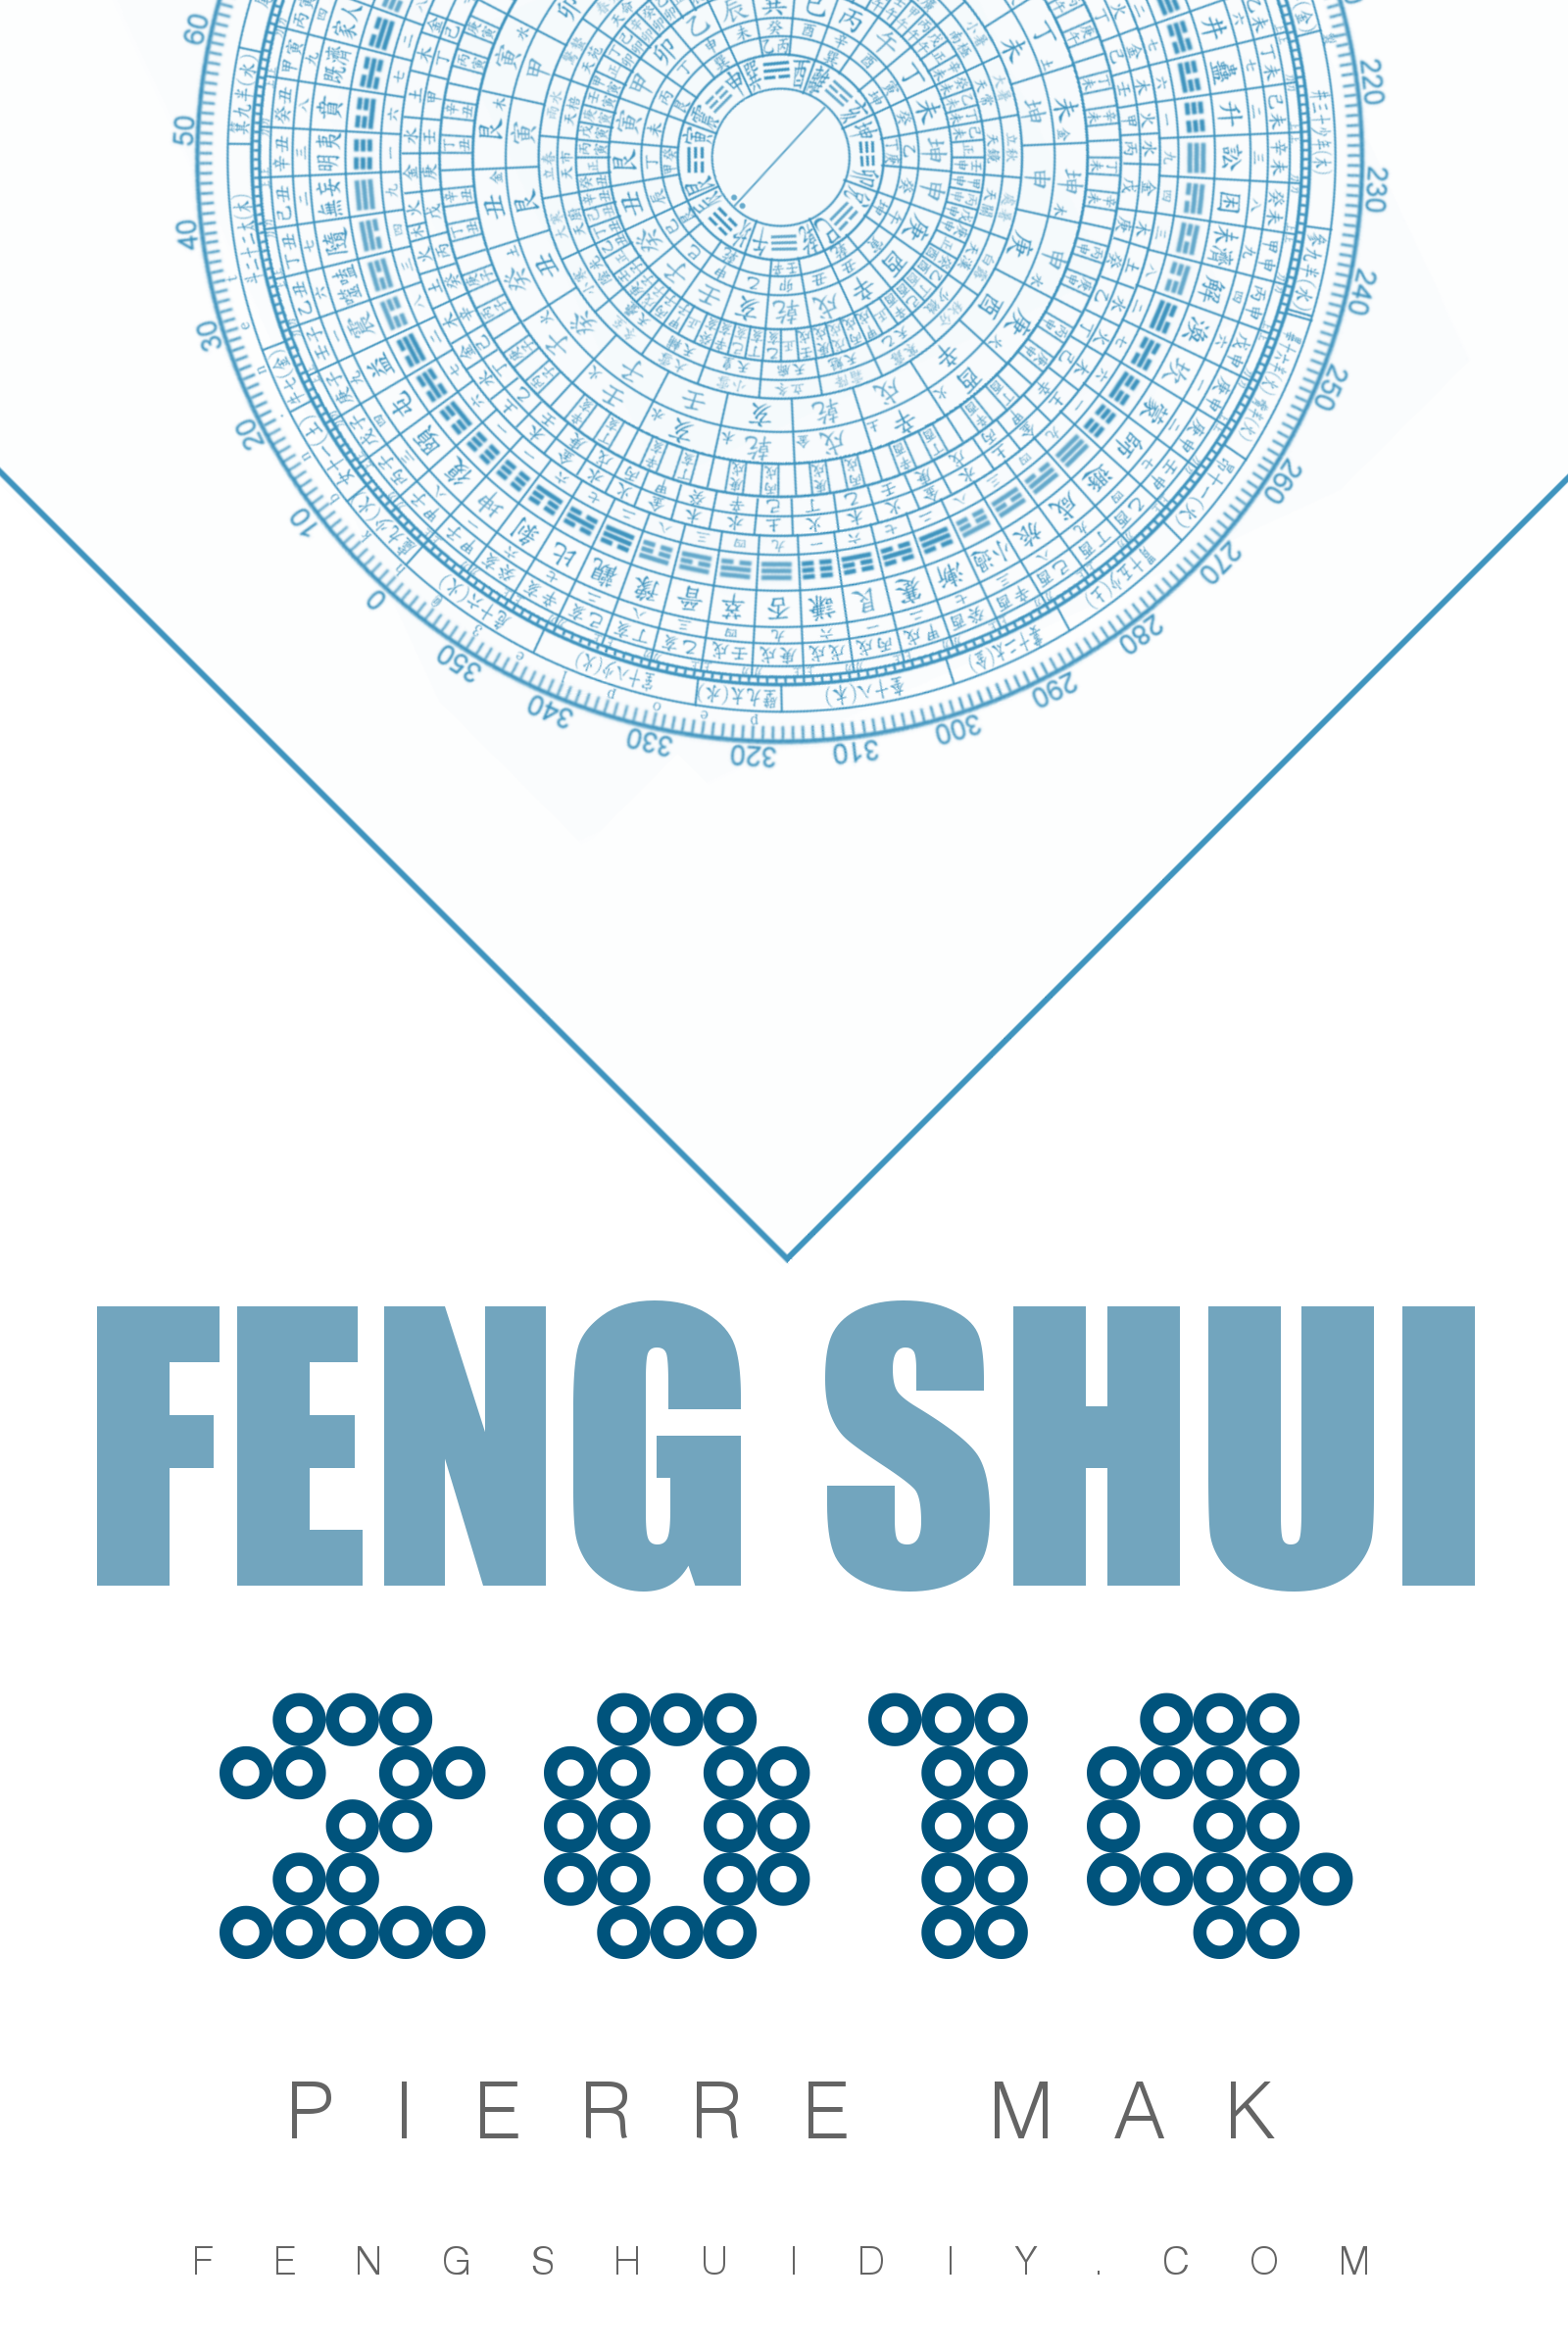 Feng Shui 2014 (1) – Beware of South and North Directions